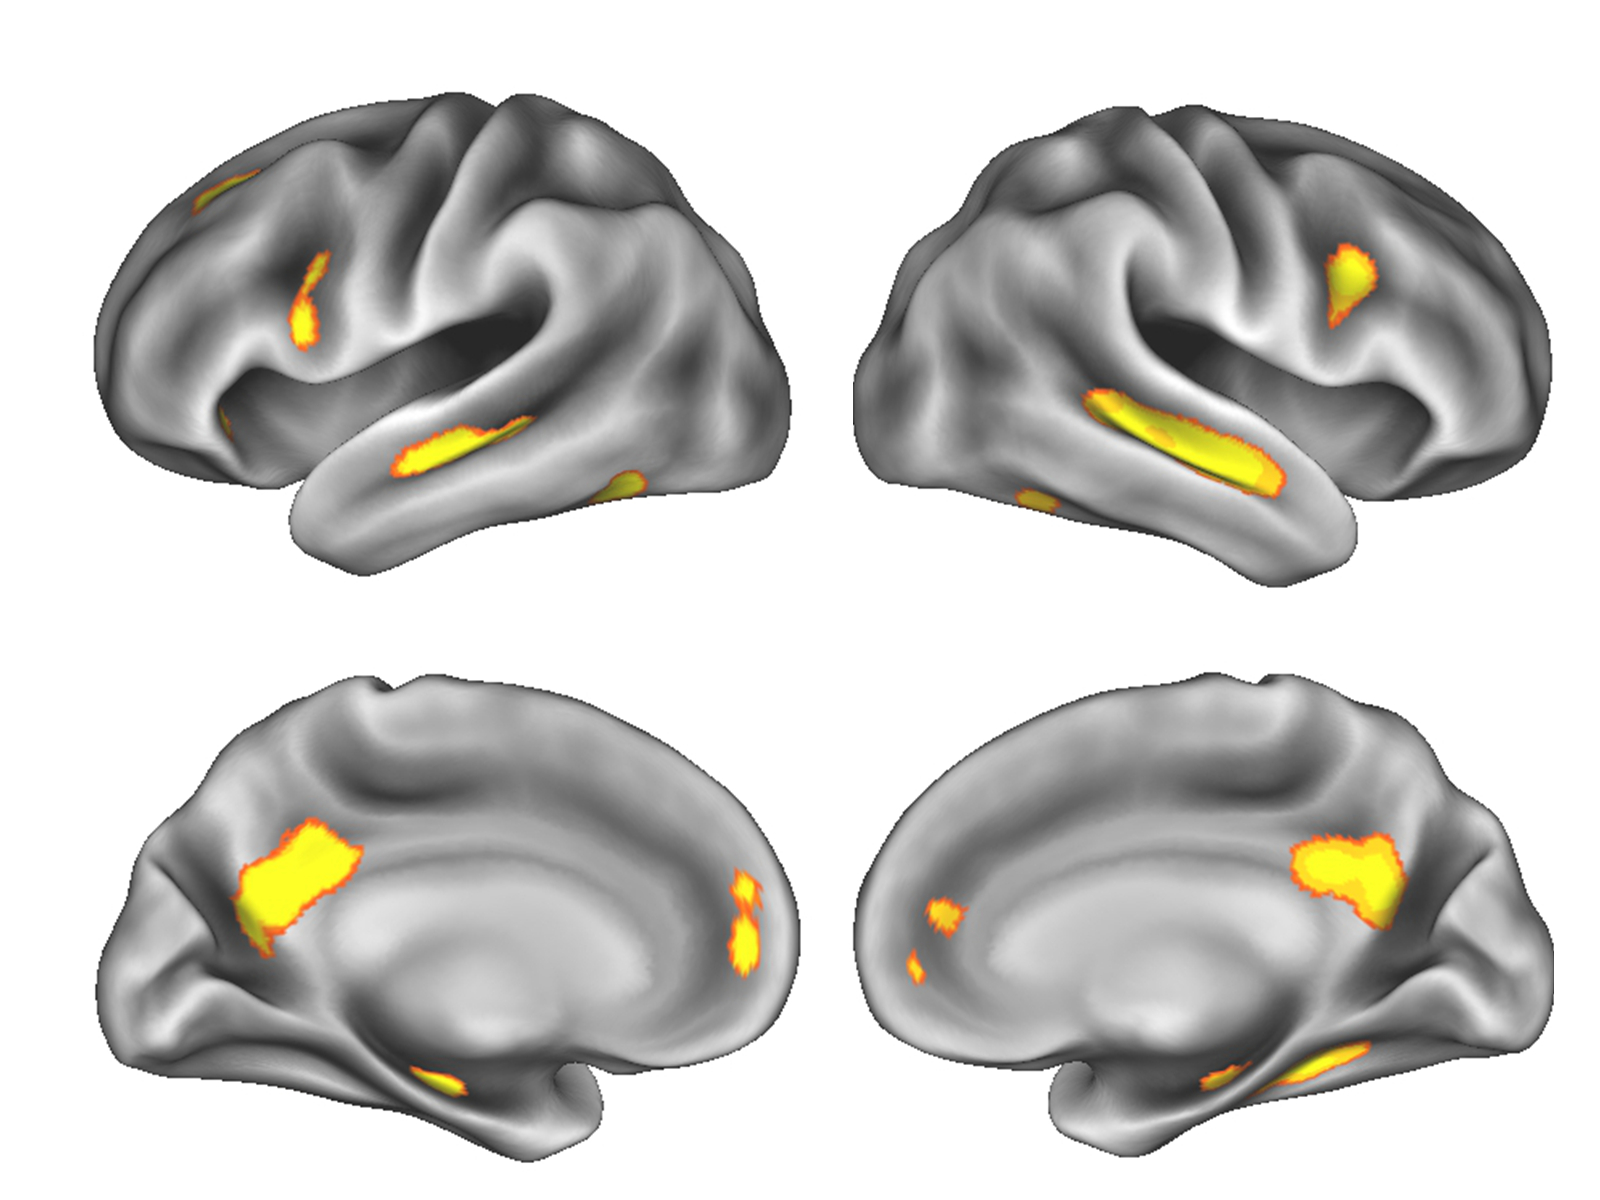 hight resolution of image of gray matter changes in the brain during pregnancy